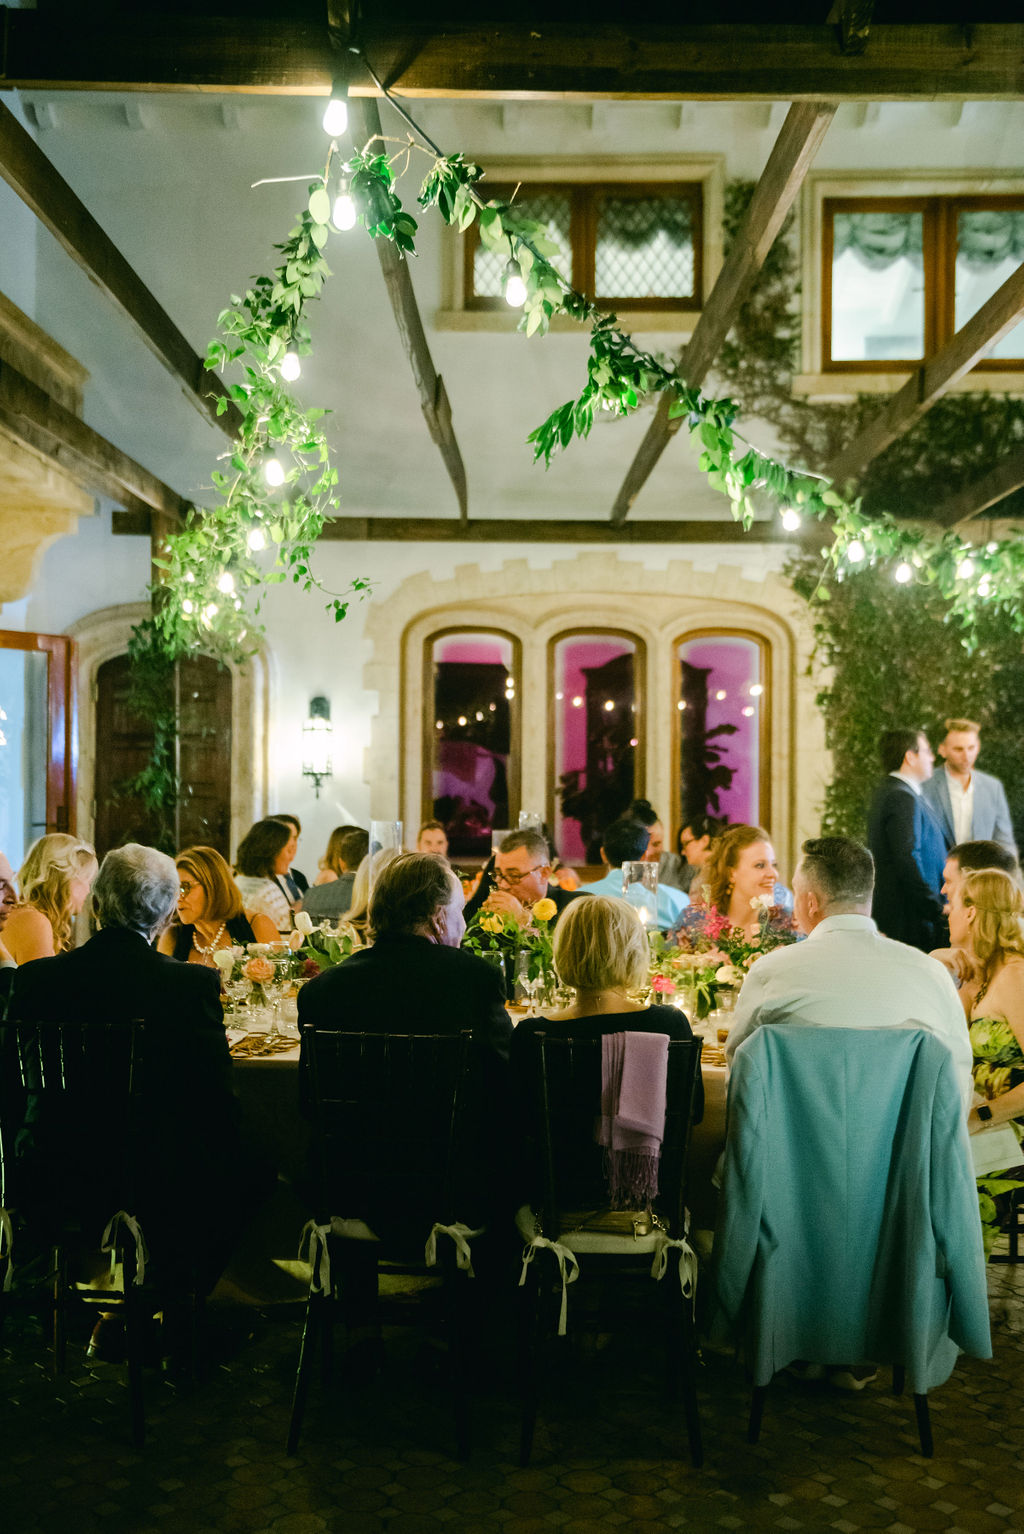 guests eating wedding dinner under the lights on the patio